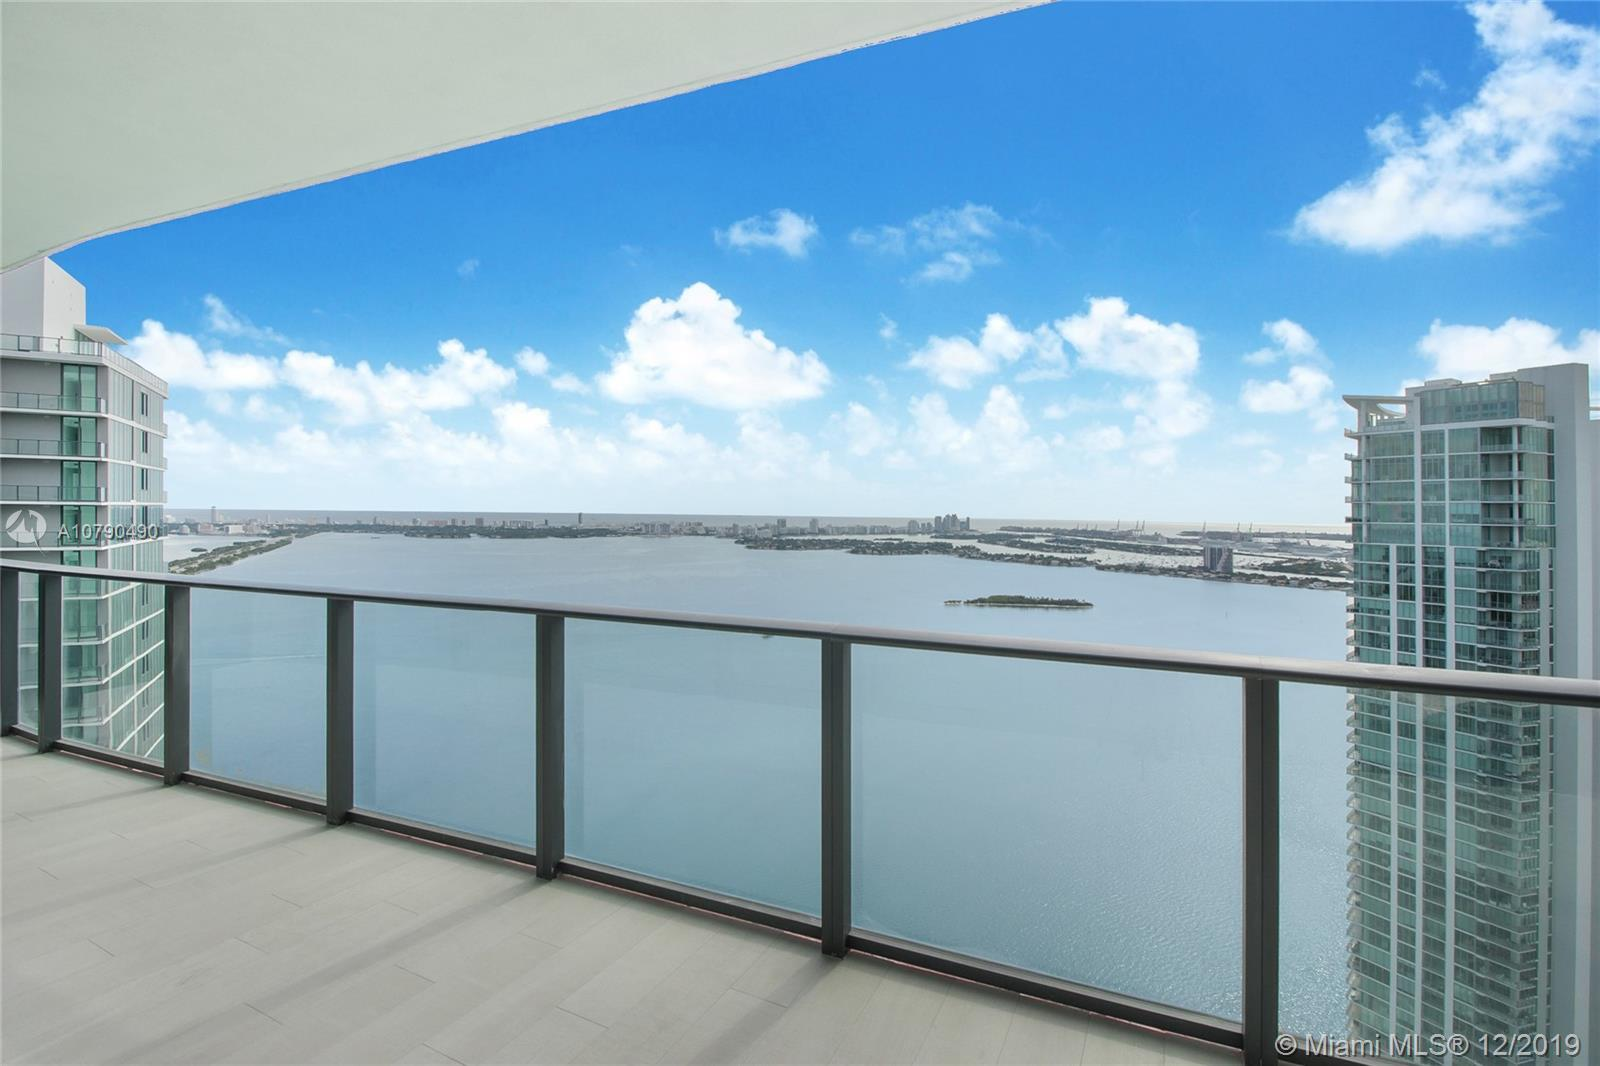 Breathtaking penthouse at Paraiso Bay Panoramic views of Biscayne Bay from the 51th floor of this st